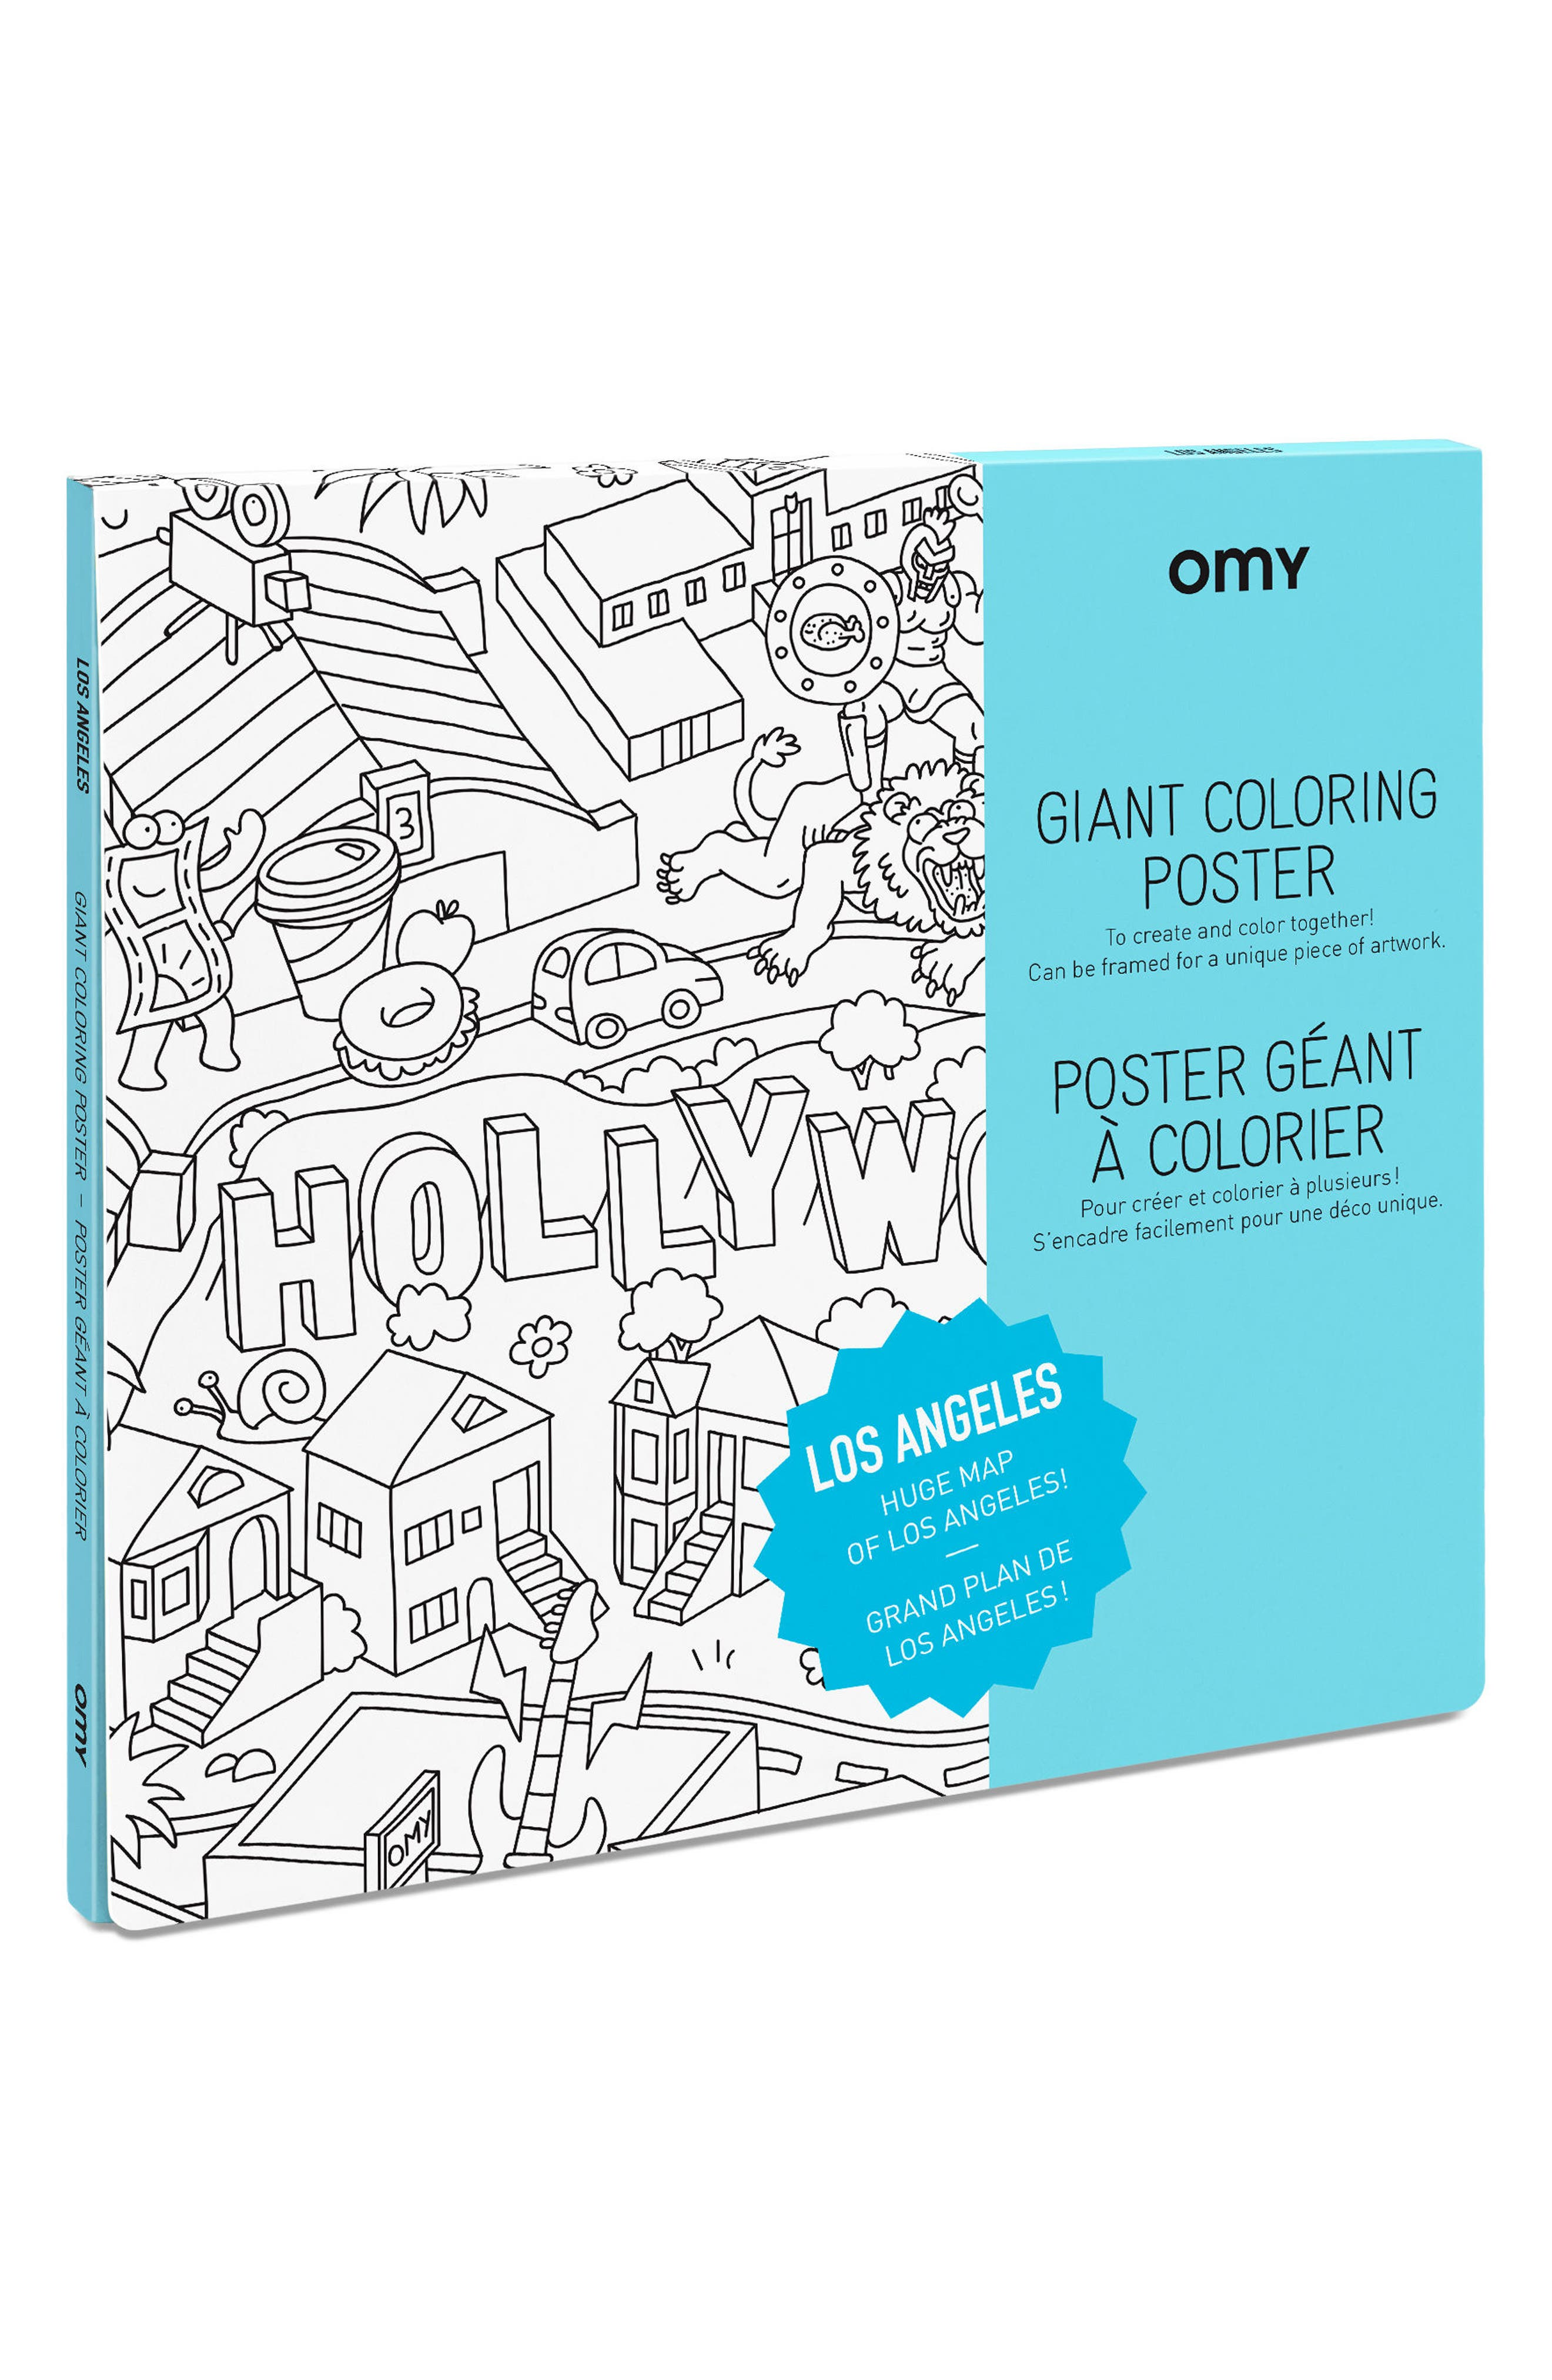 Alternate Image 1 Selected - OMY Los Angeles Giant Coloring Poster